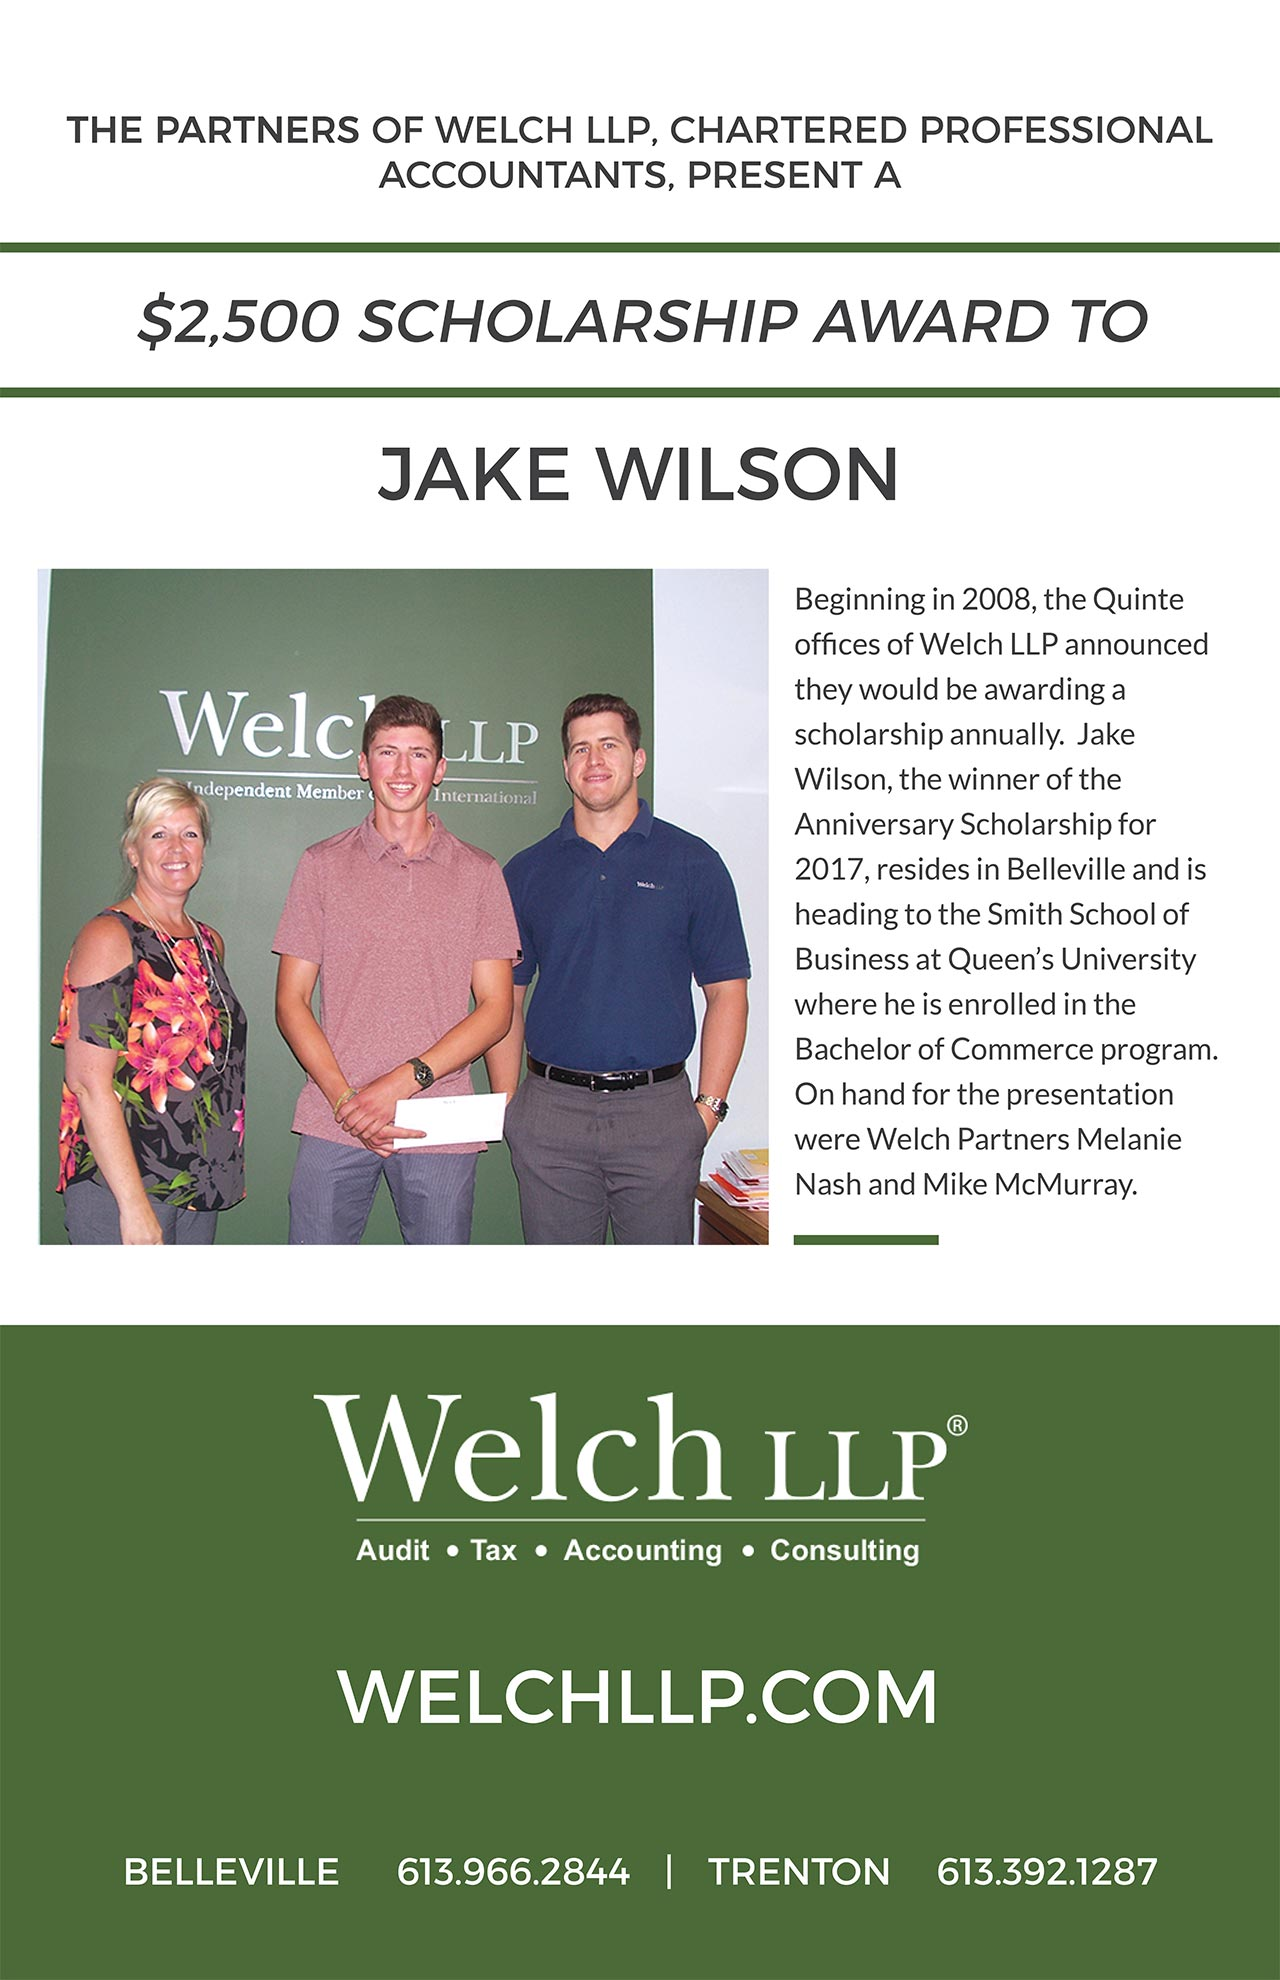 Welch LLP Partners present Jake Wilson a $2,500 scholarship